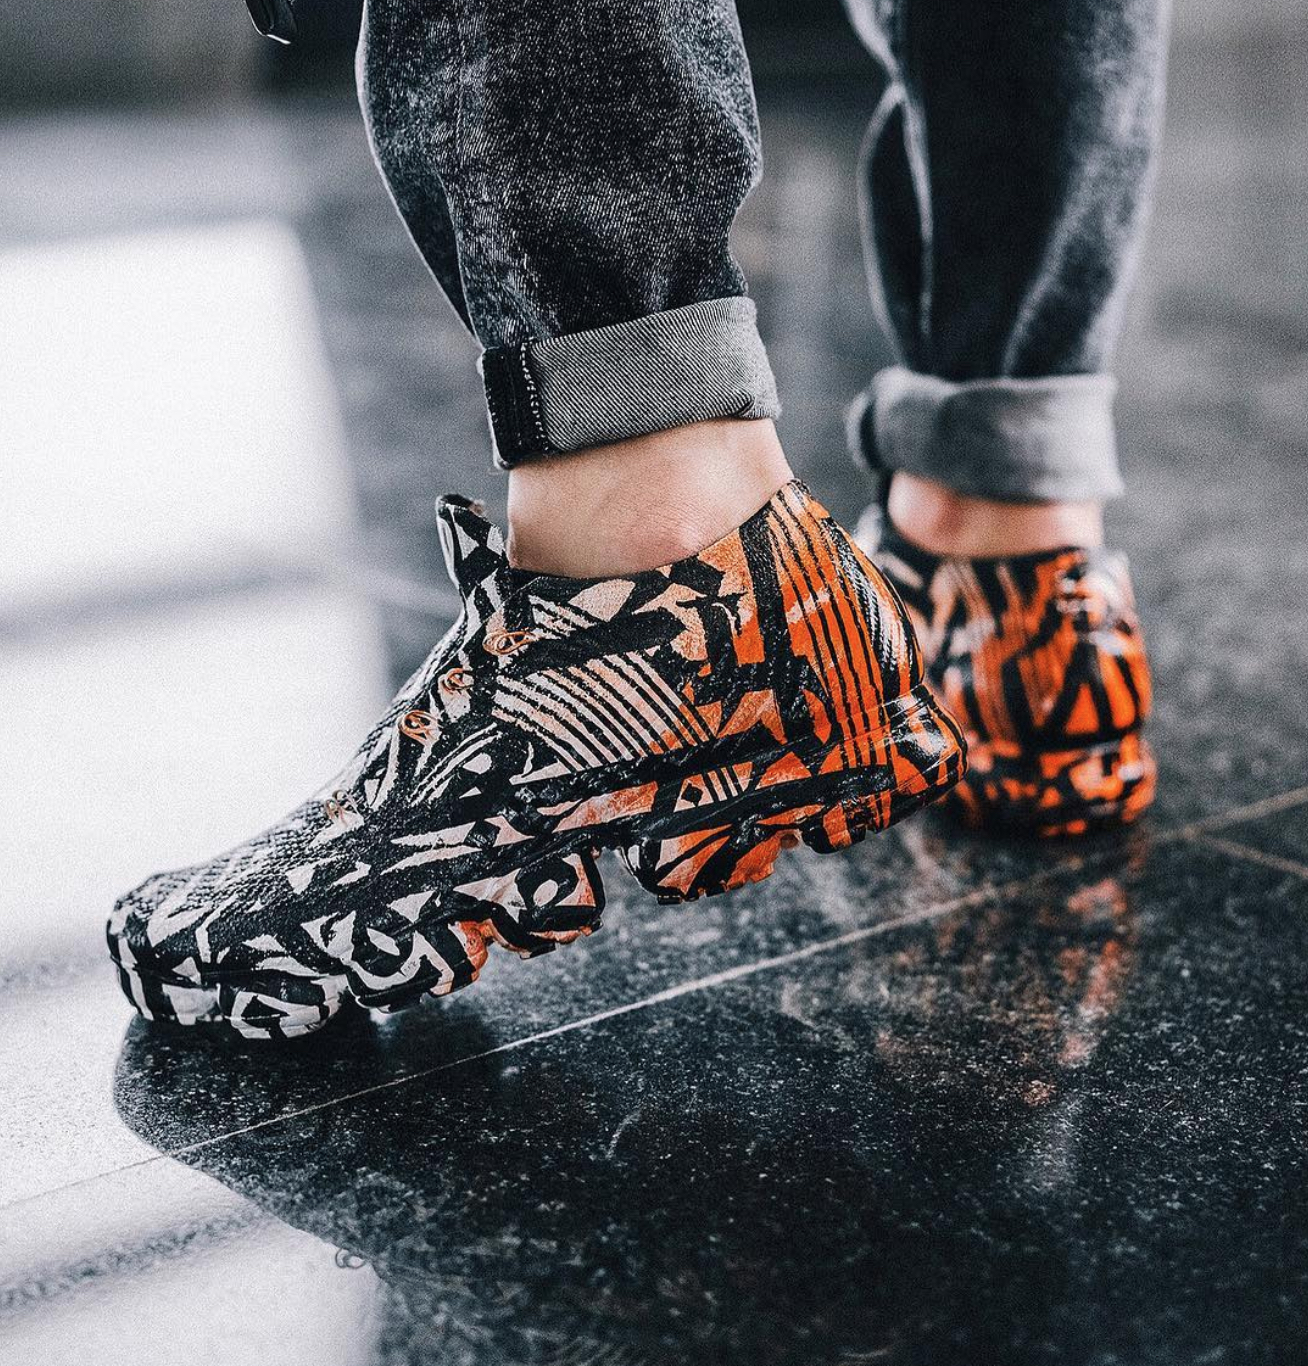 best service 99342 9f111 These Pokras Lampas Calligraffiti Nike VaporMax Customs are ...